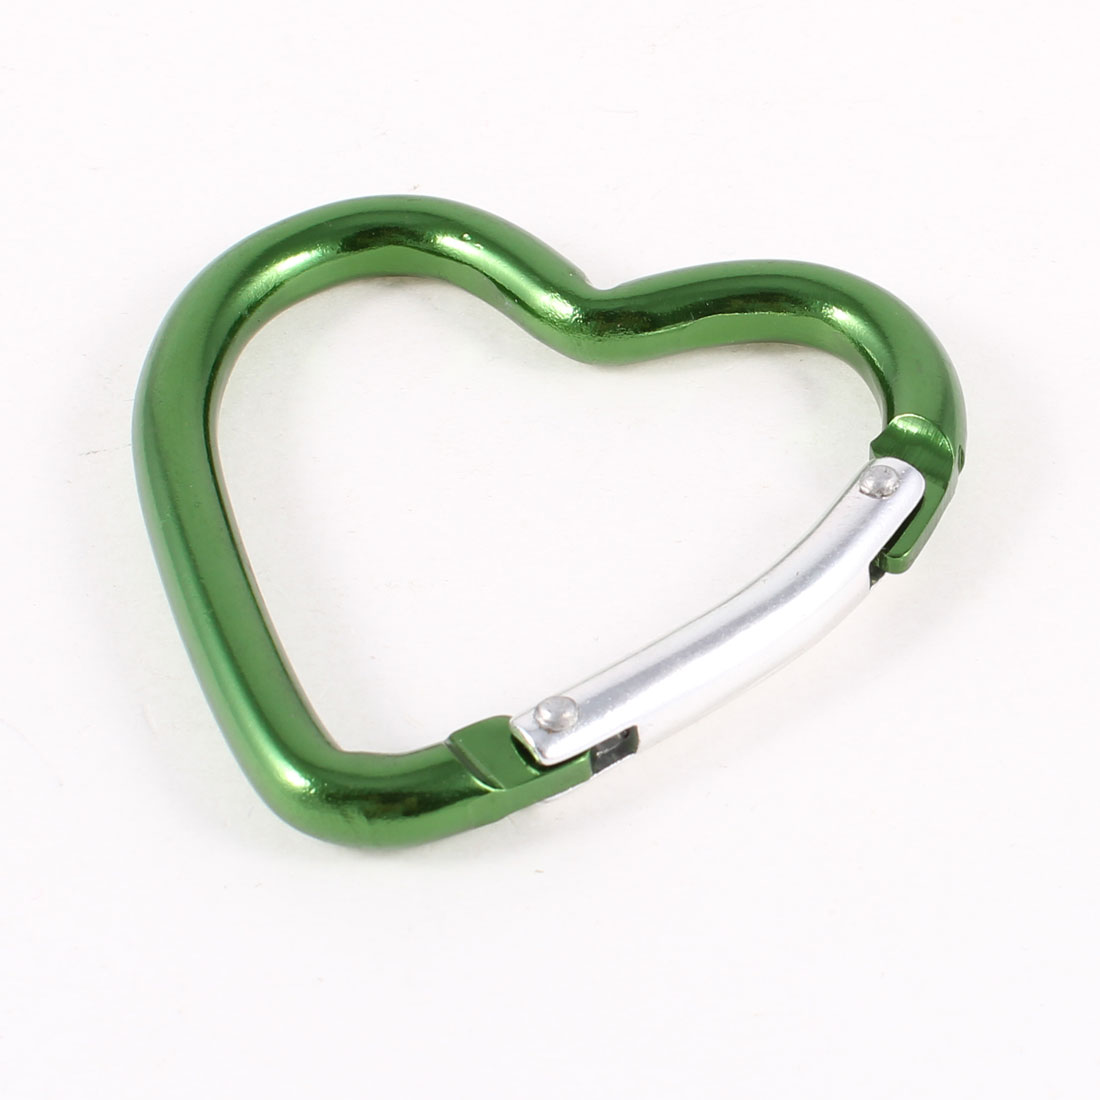 Green Aluminum Alloy Heart Shape Camping Hiking Carabiner Hook Key Holder